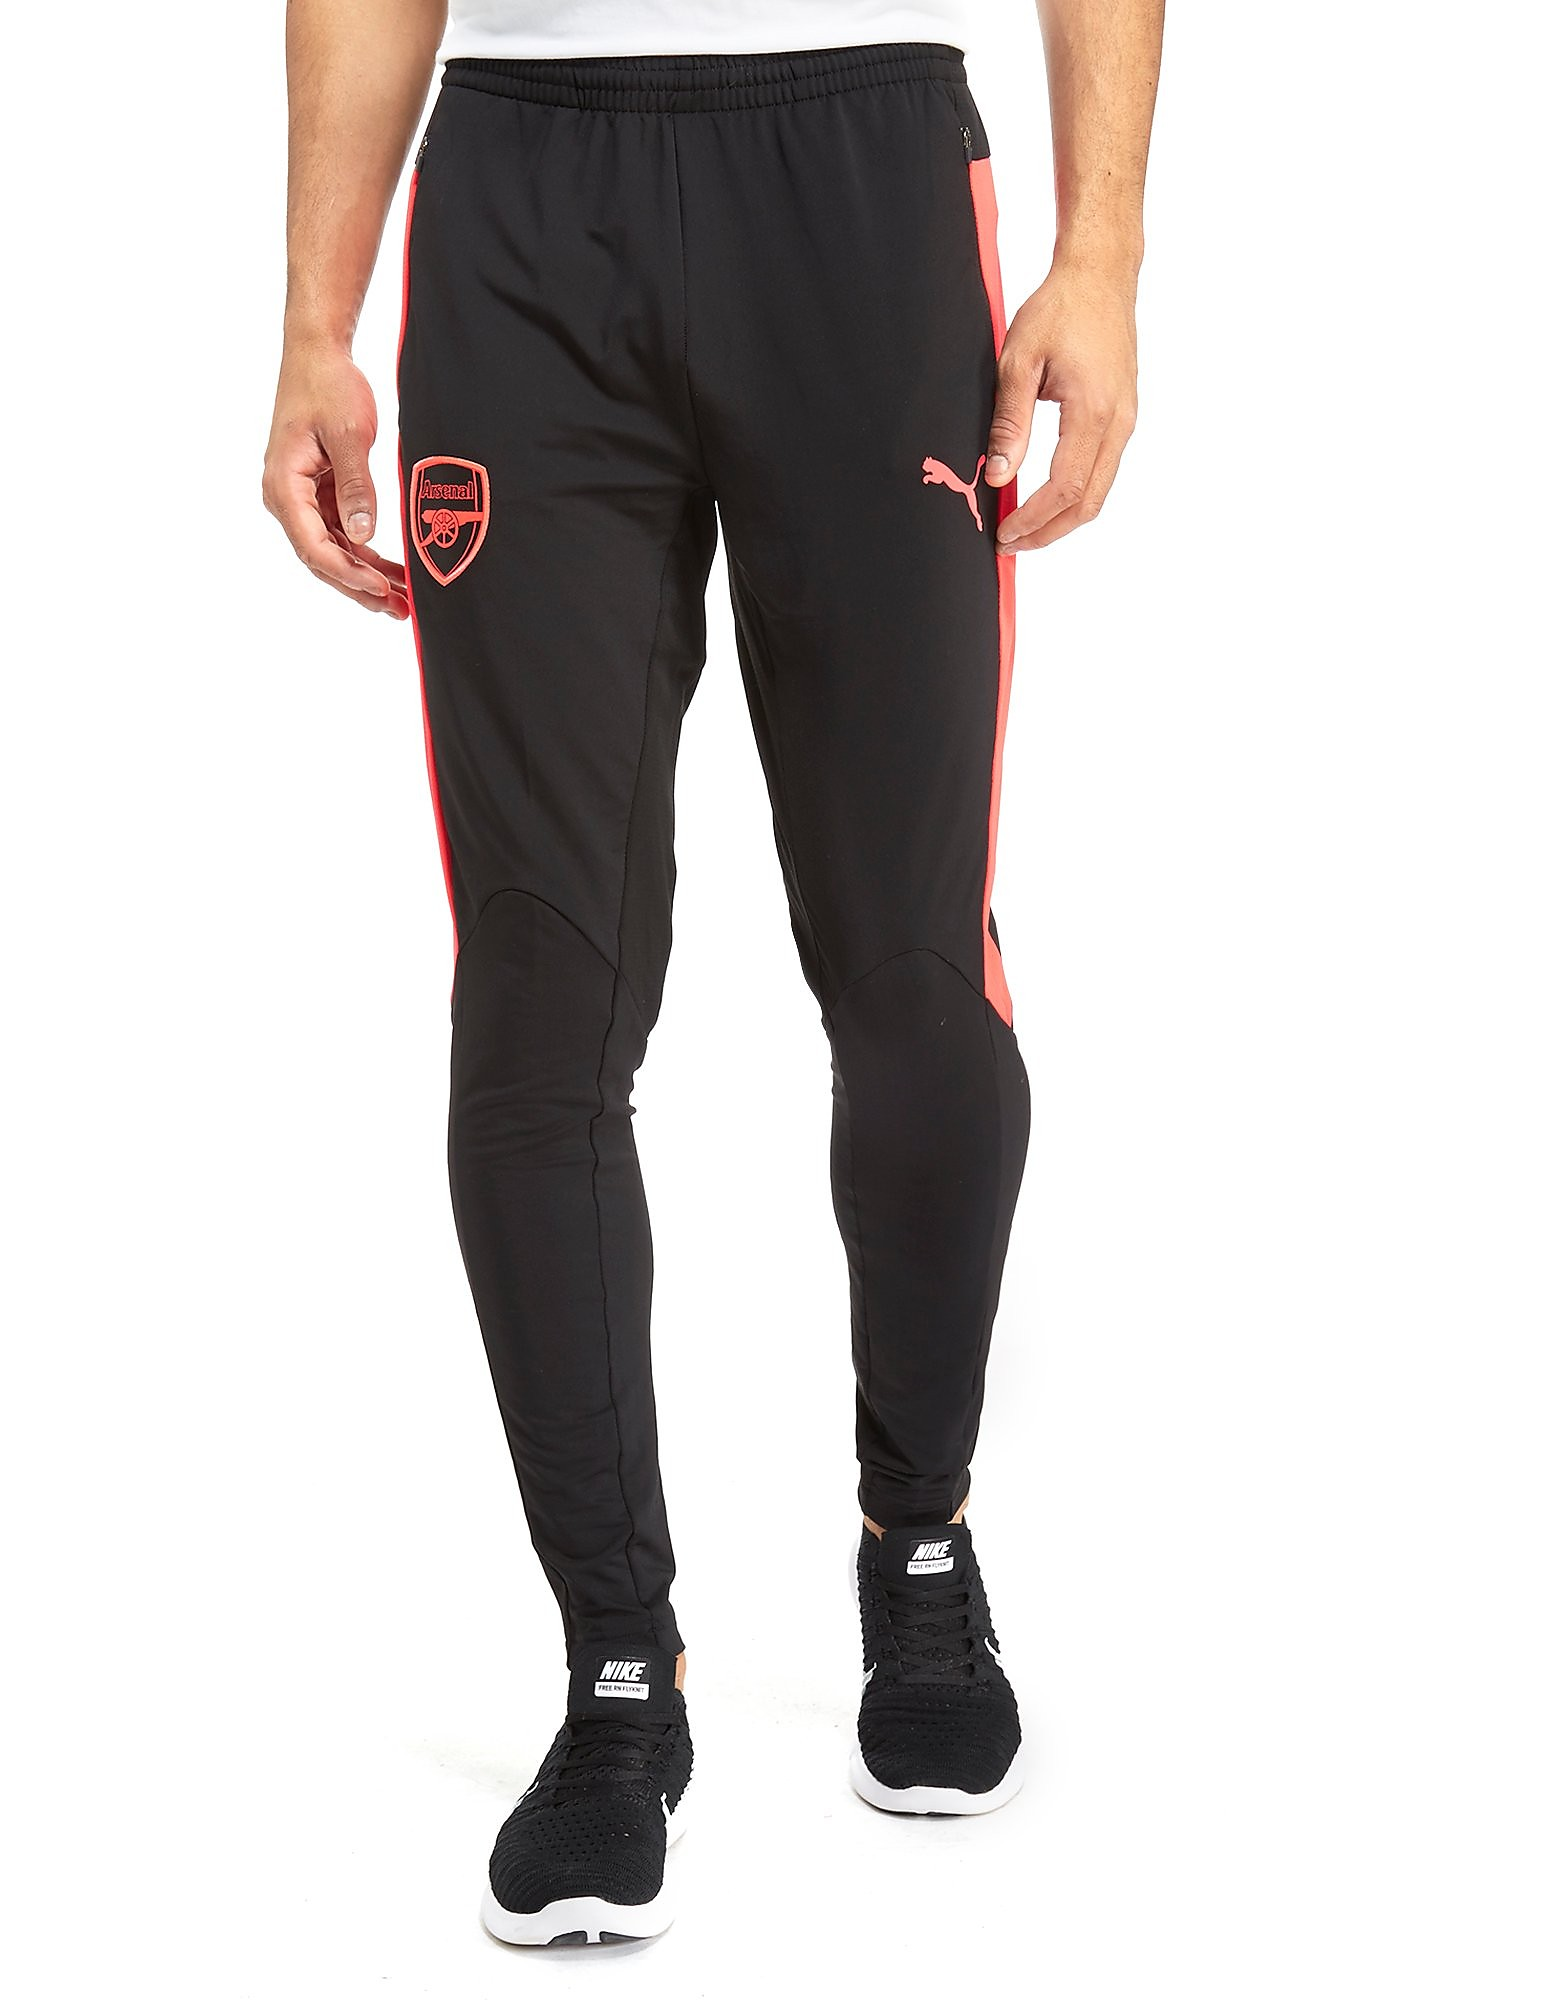 PUMA Arsenal 2017 Training Pants